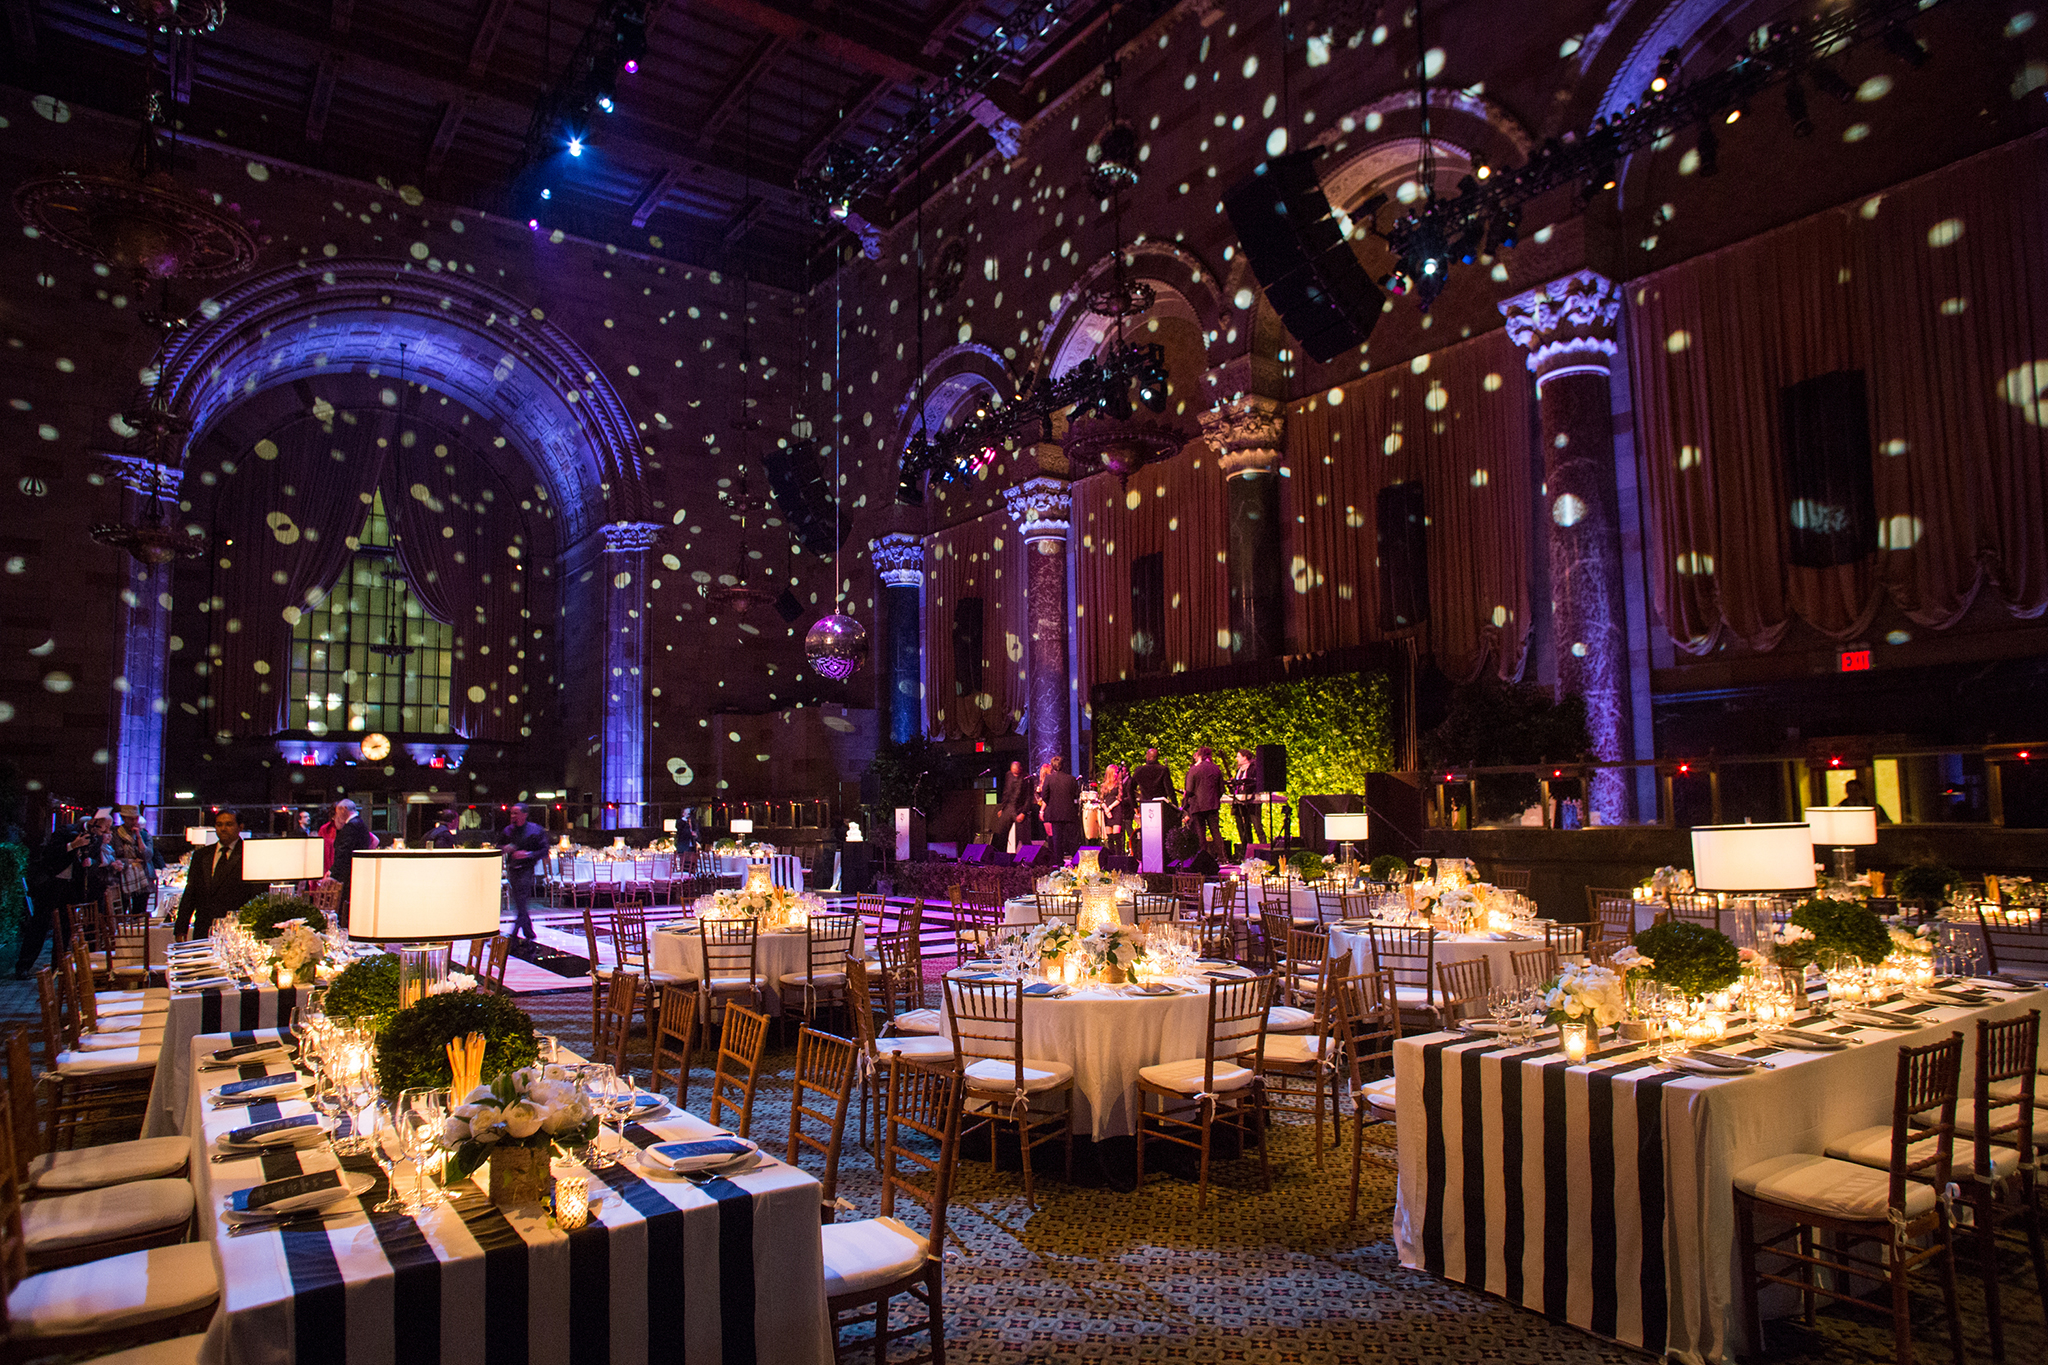 Outdoor wedding reception lighting ideas Romantic 2015070814363590087237888starrynightreception2jpg Celebrations Ltd Gorgeous Ways To Bring The Outside Into Your Wedding Huffpost Life